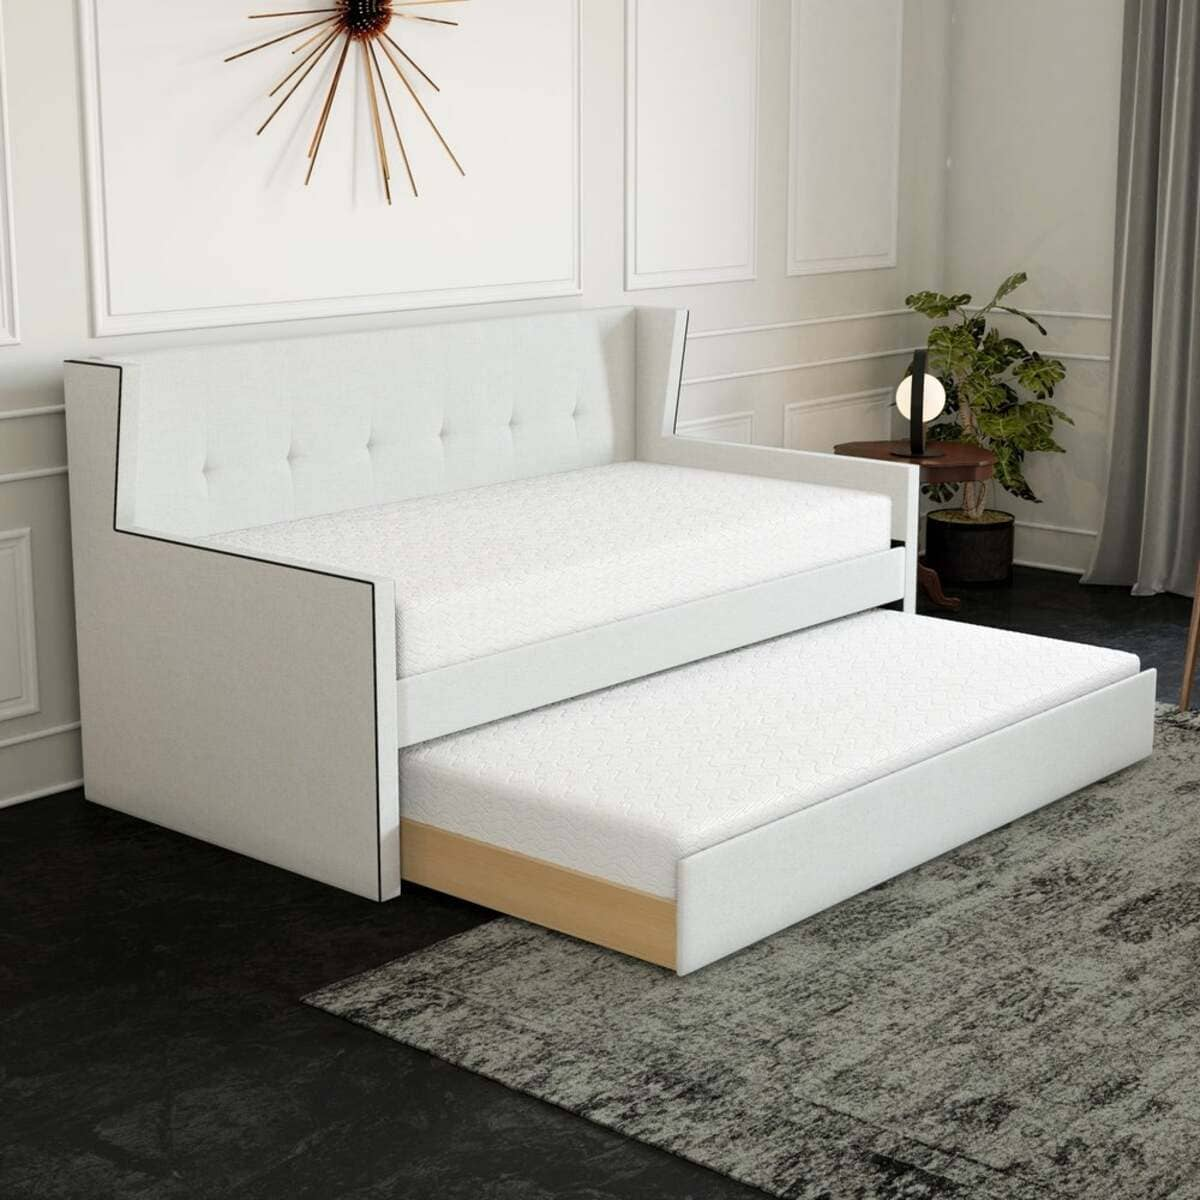 daybed 22 - 20 delightful daybeds that easily convert into comfortable beds